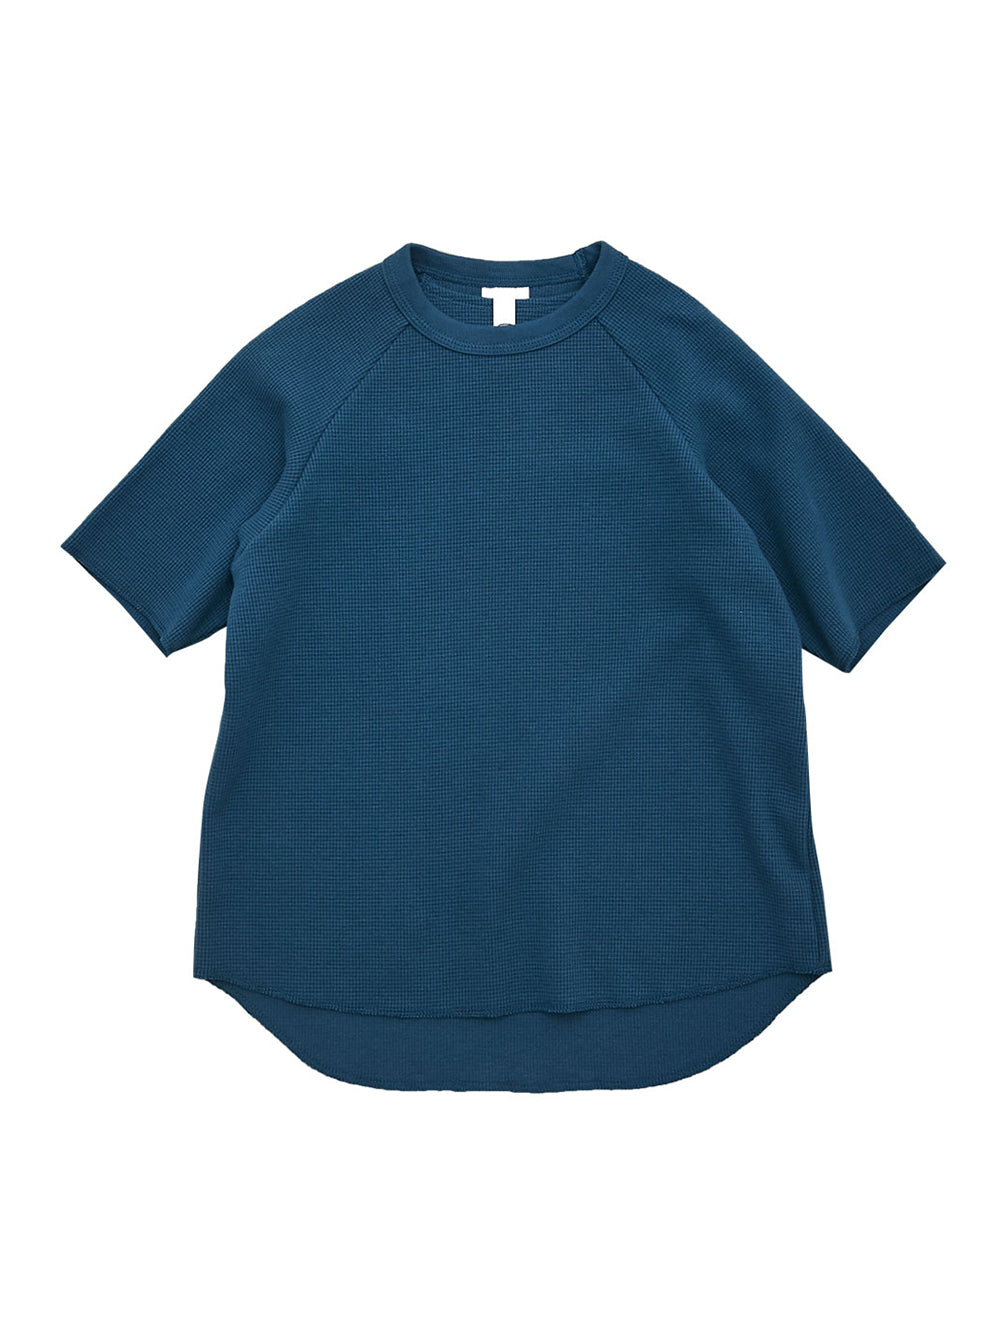 Blue Stretch T-Shirt